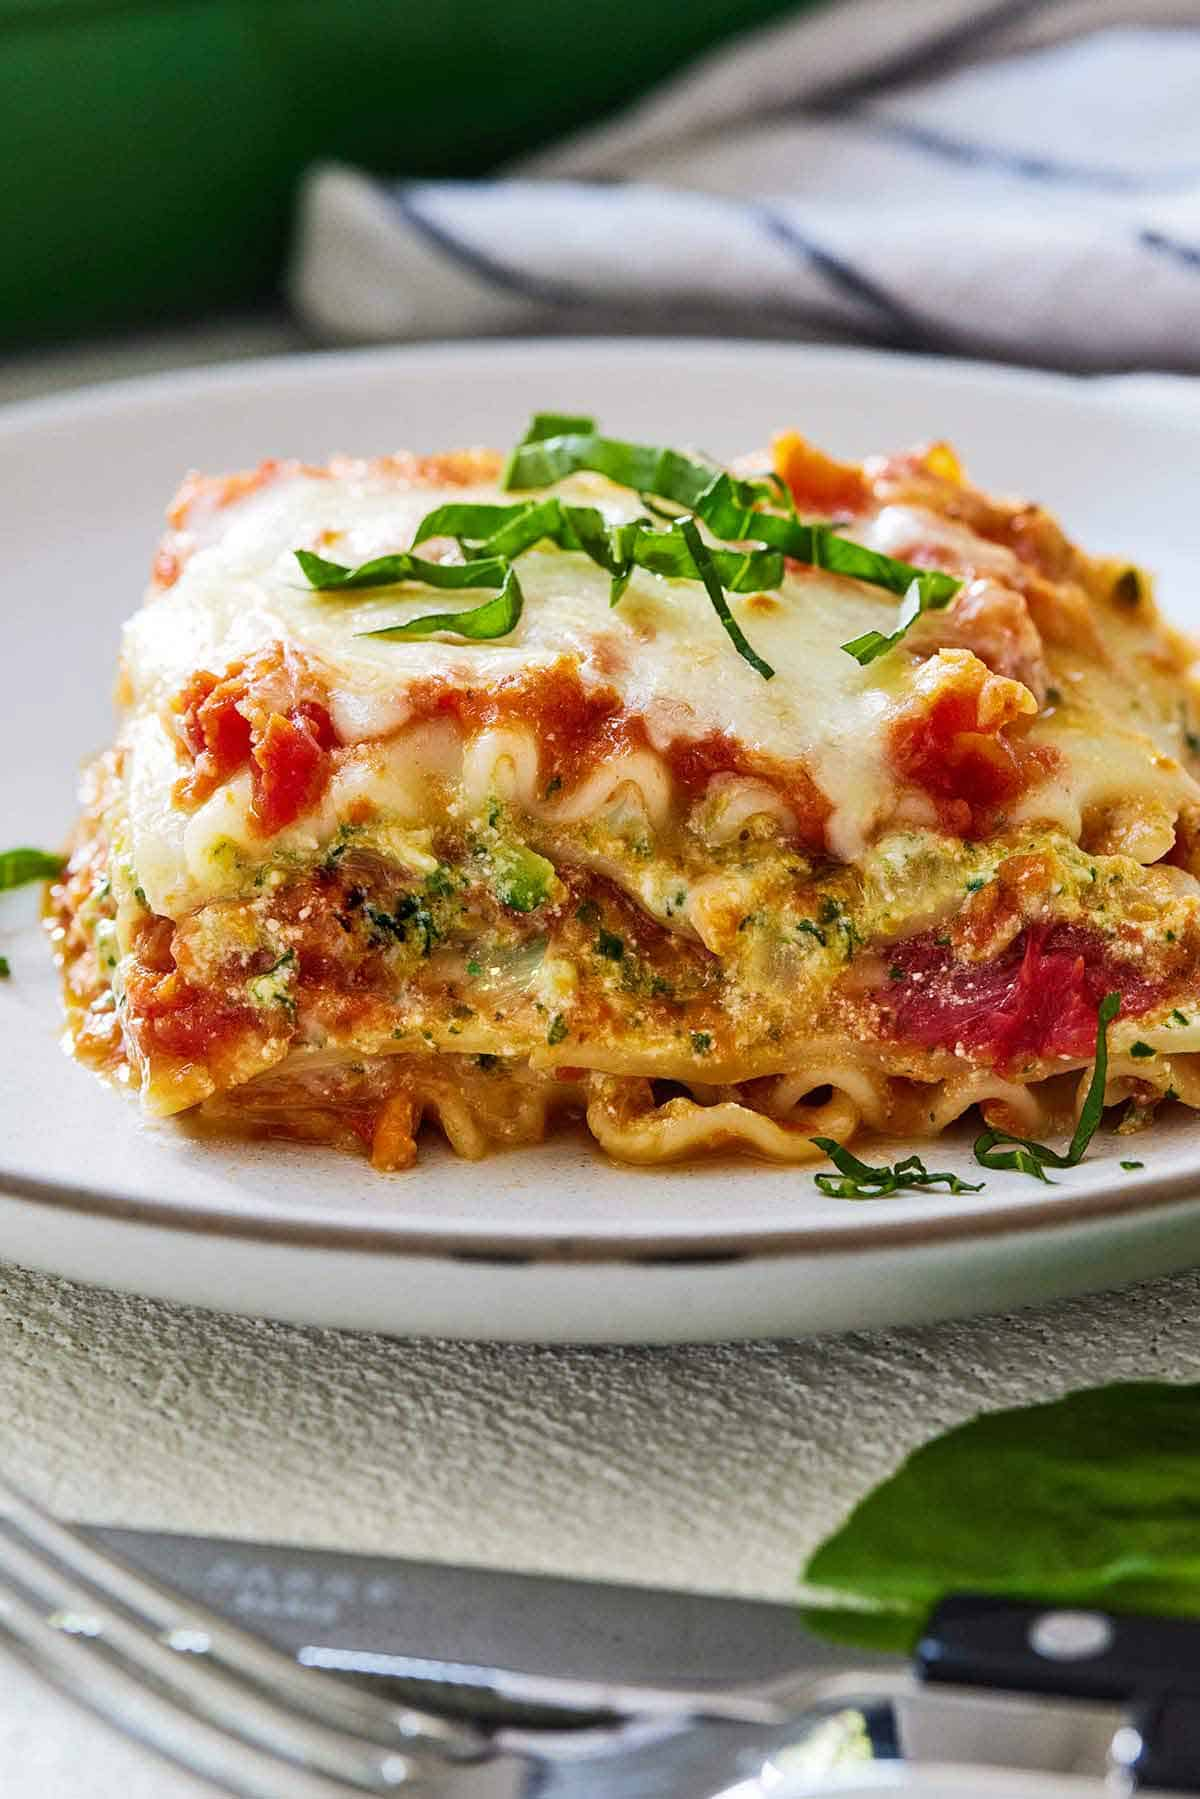 A profile shot of a serving of vegetarian lasagna, showing the layers.